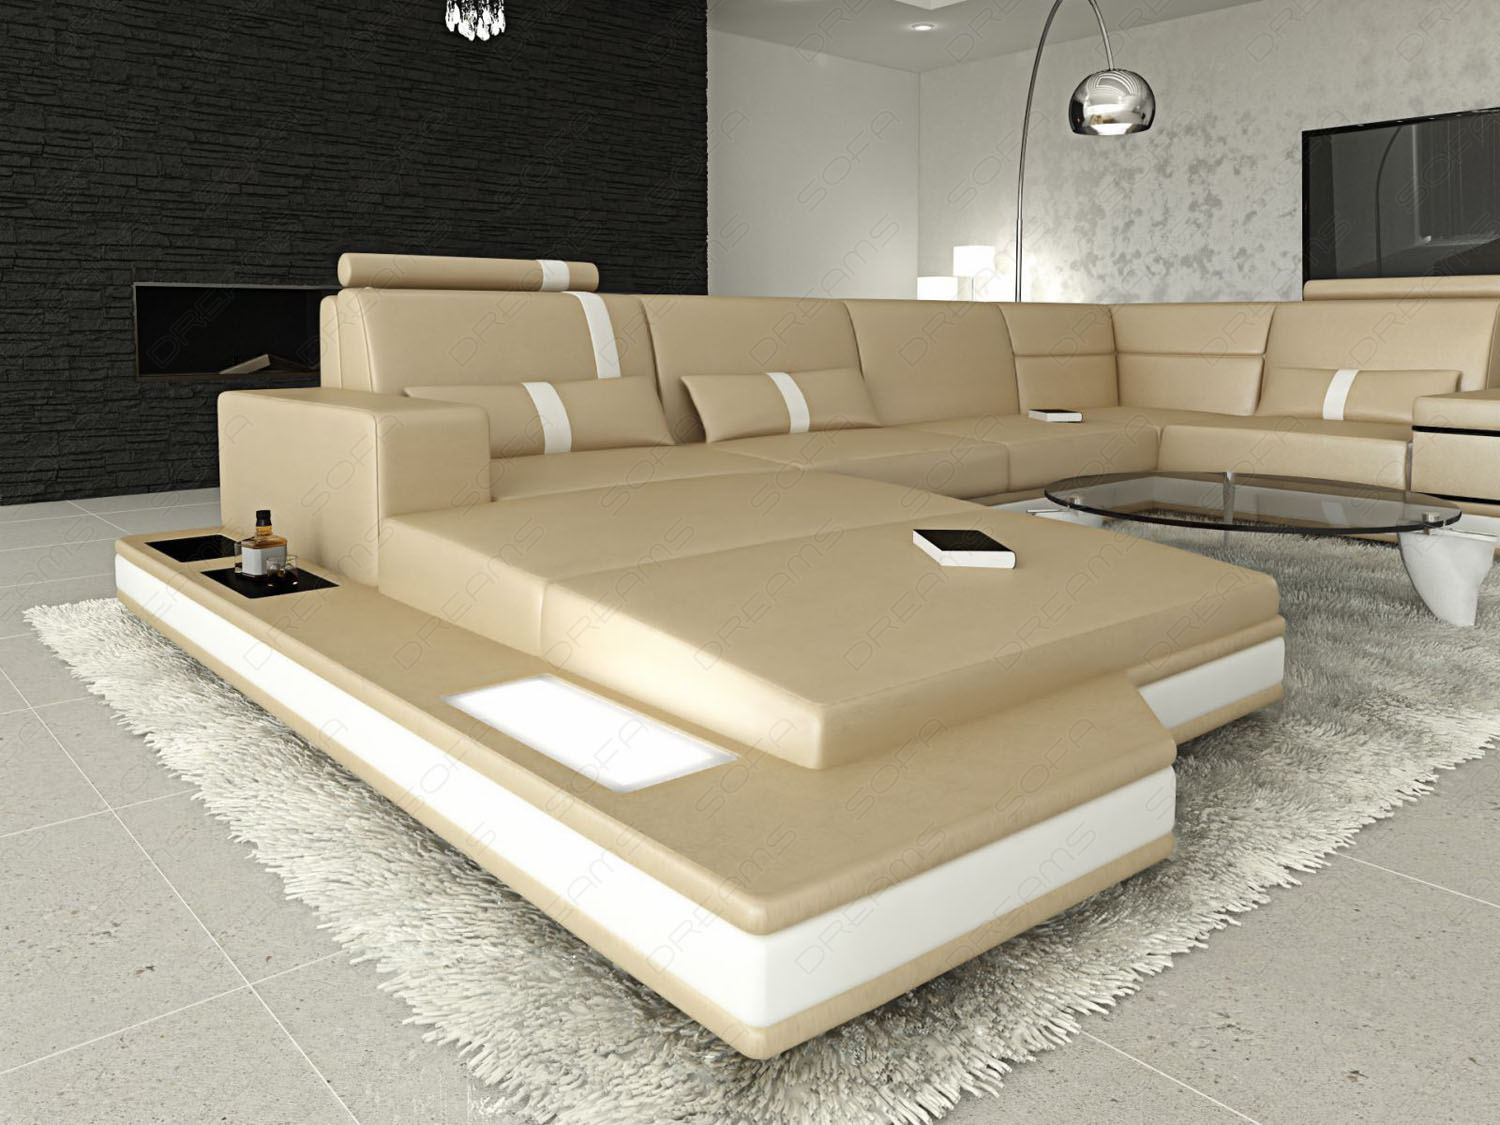 ledersofa messana in u form xxl eckcouch sandbeige ebay. Black Bedroom Furniture Sets. Home Design Ideas